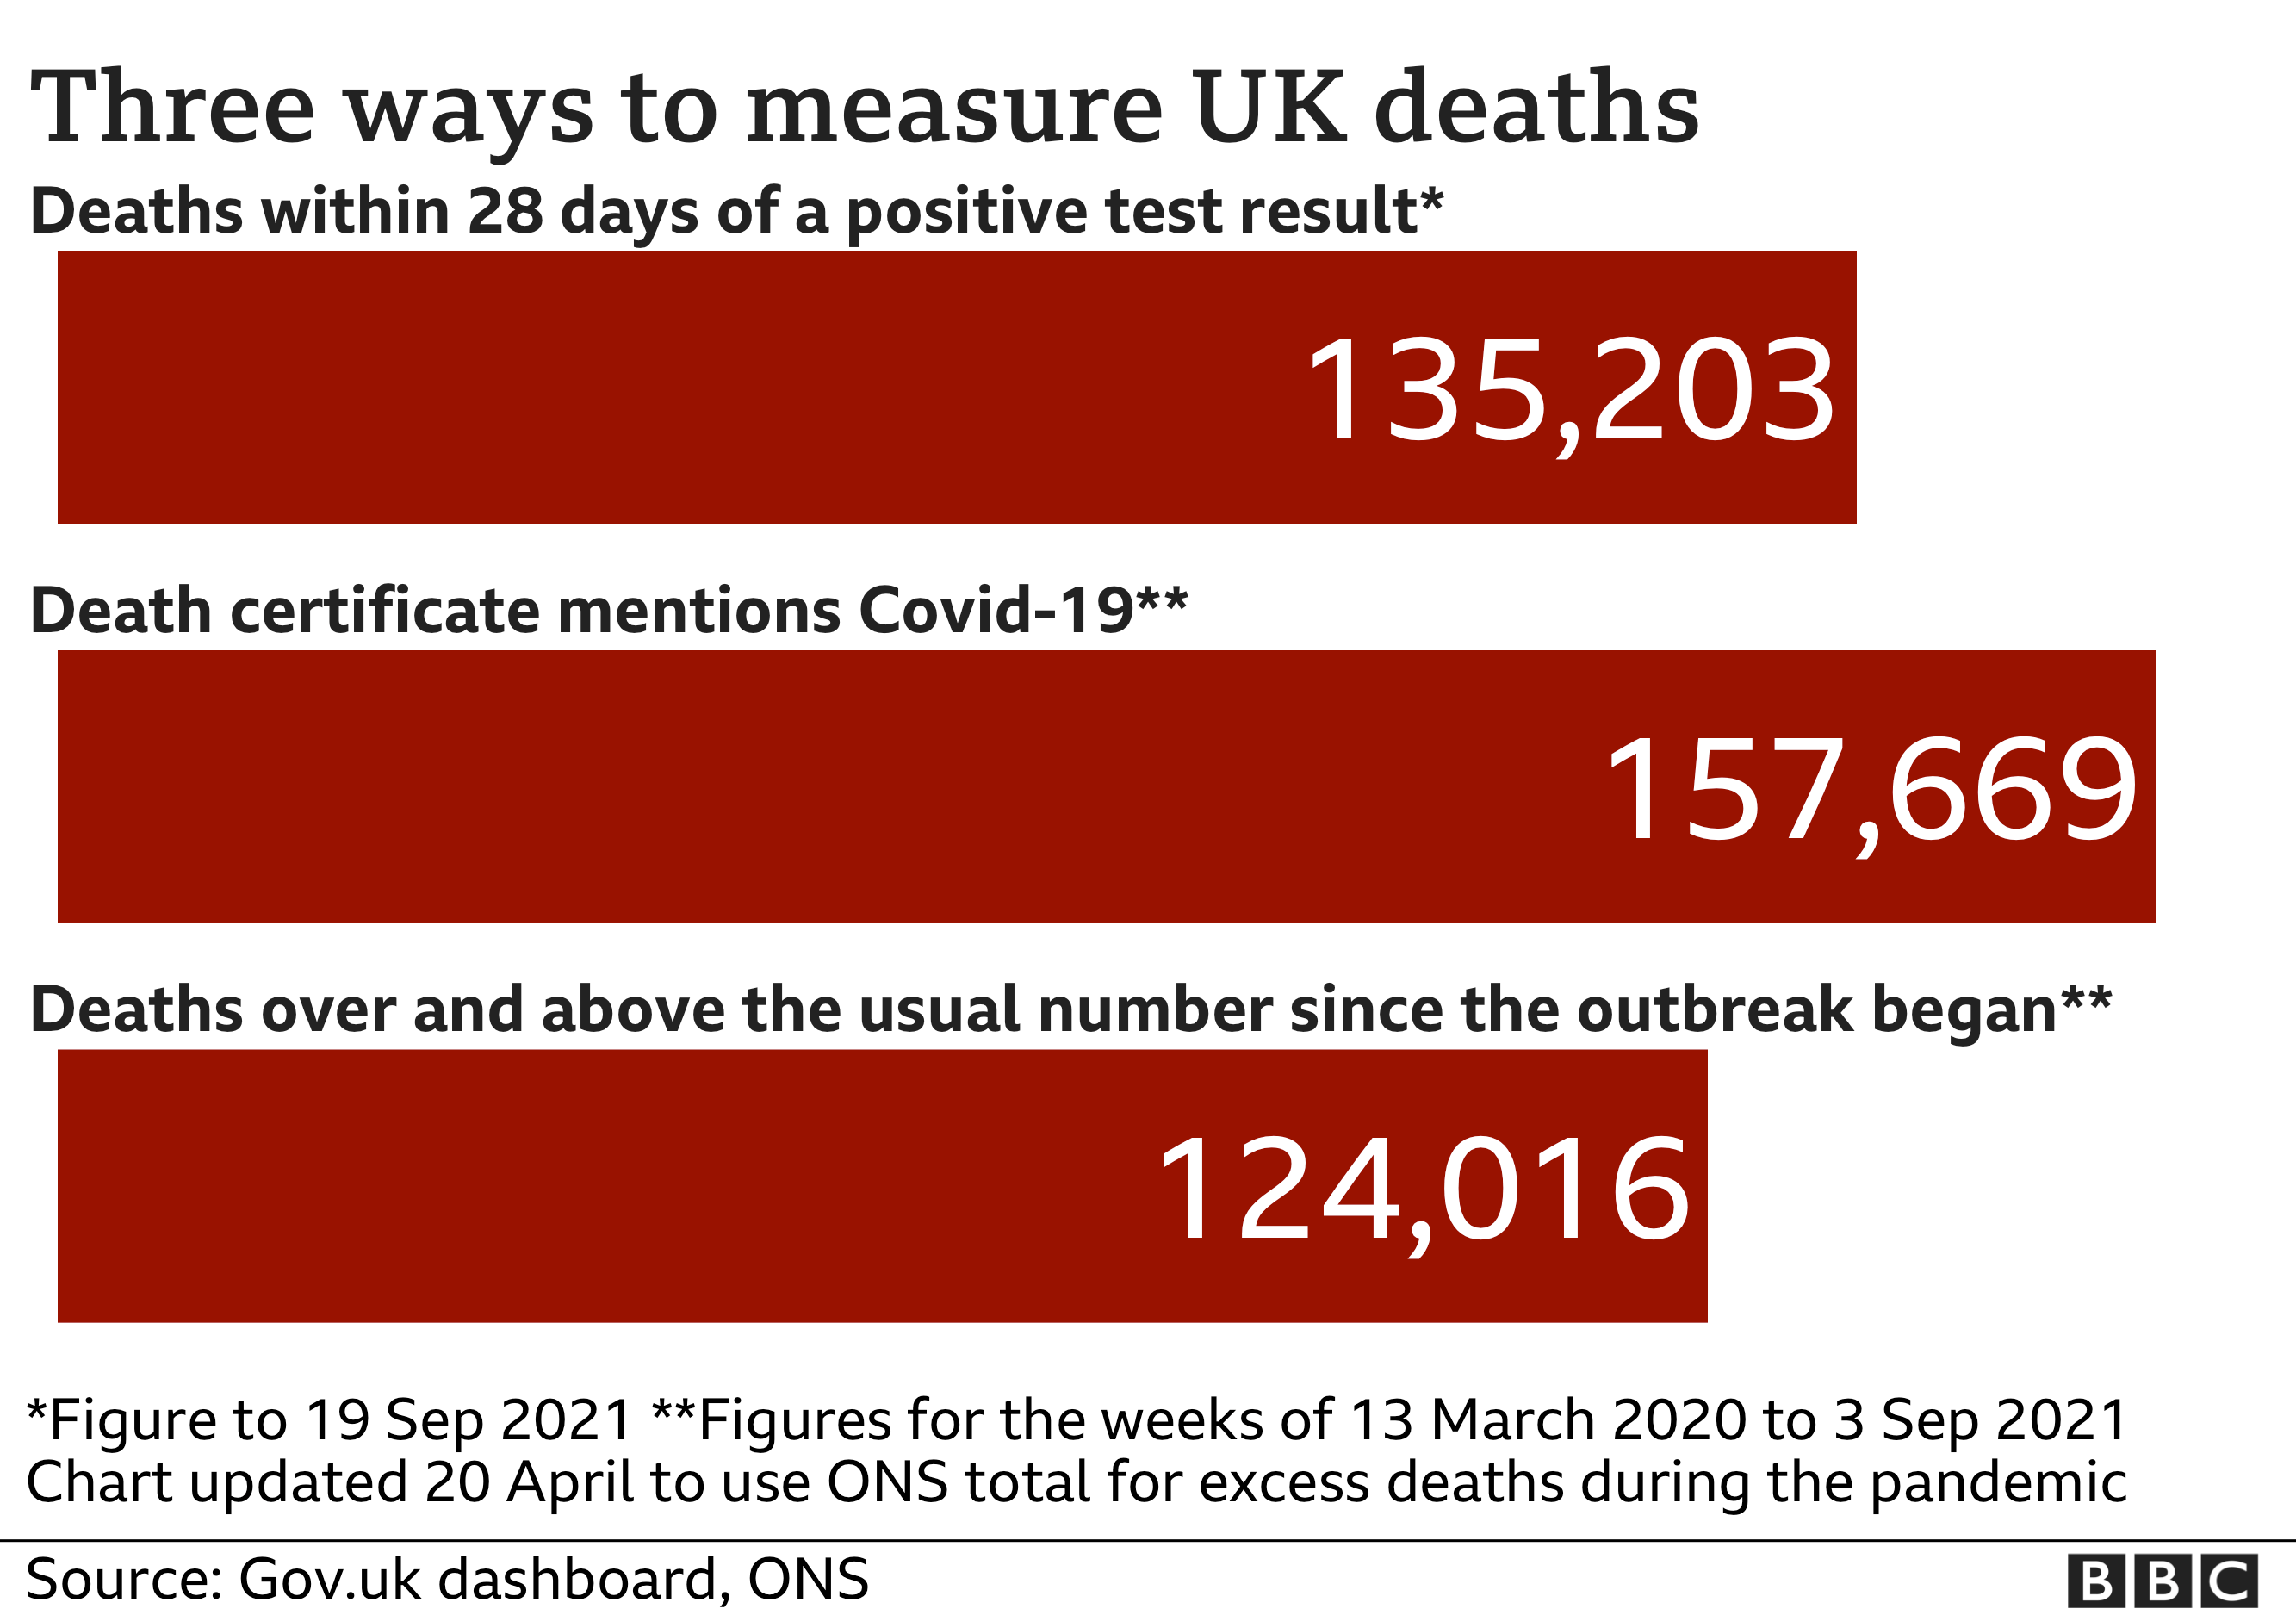 Chart showing the three ways of measuring deaths from Covid - the government figure of 135,203 includes all deaths within 28 days of a positive result; the ONS counts all death certificate mentions and that figure is now 157,669; the excess death figures is the number of deaths over and above the usual total and that figure is now 124,016. Updated 19 Sept.